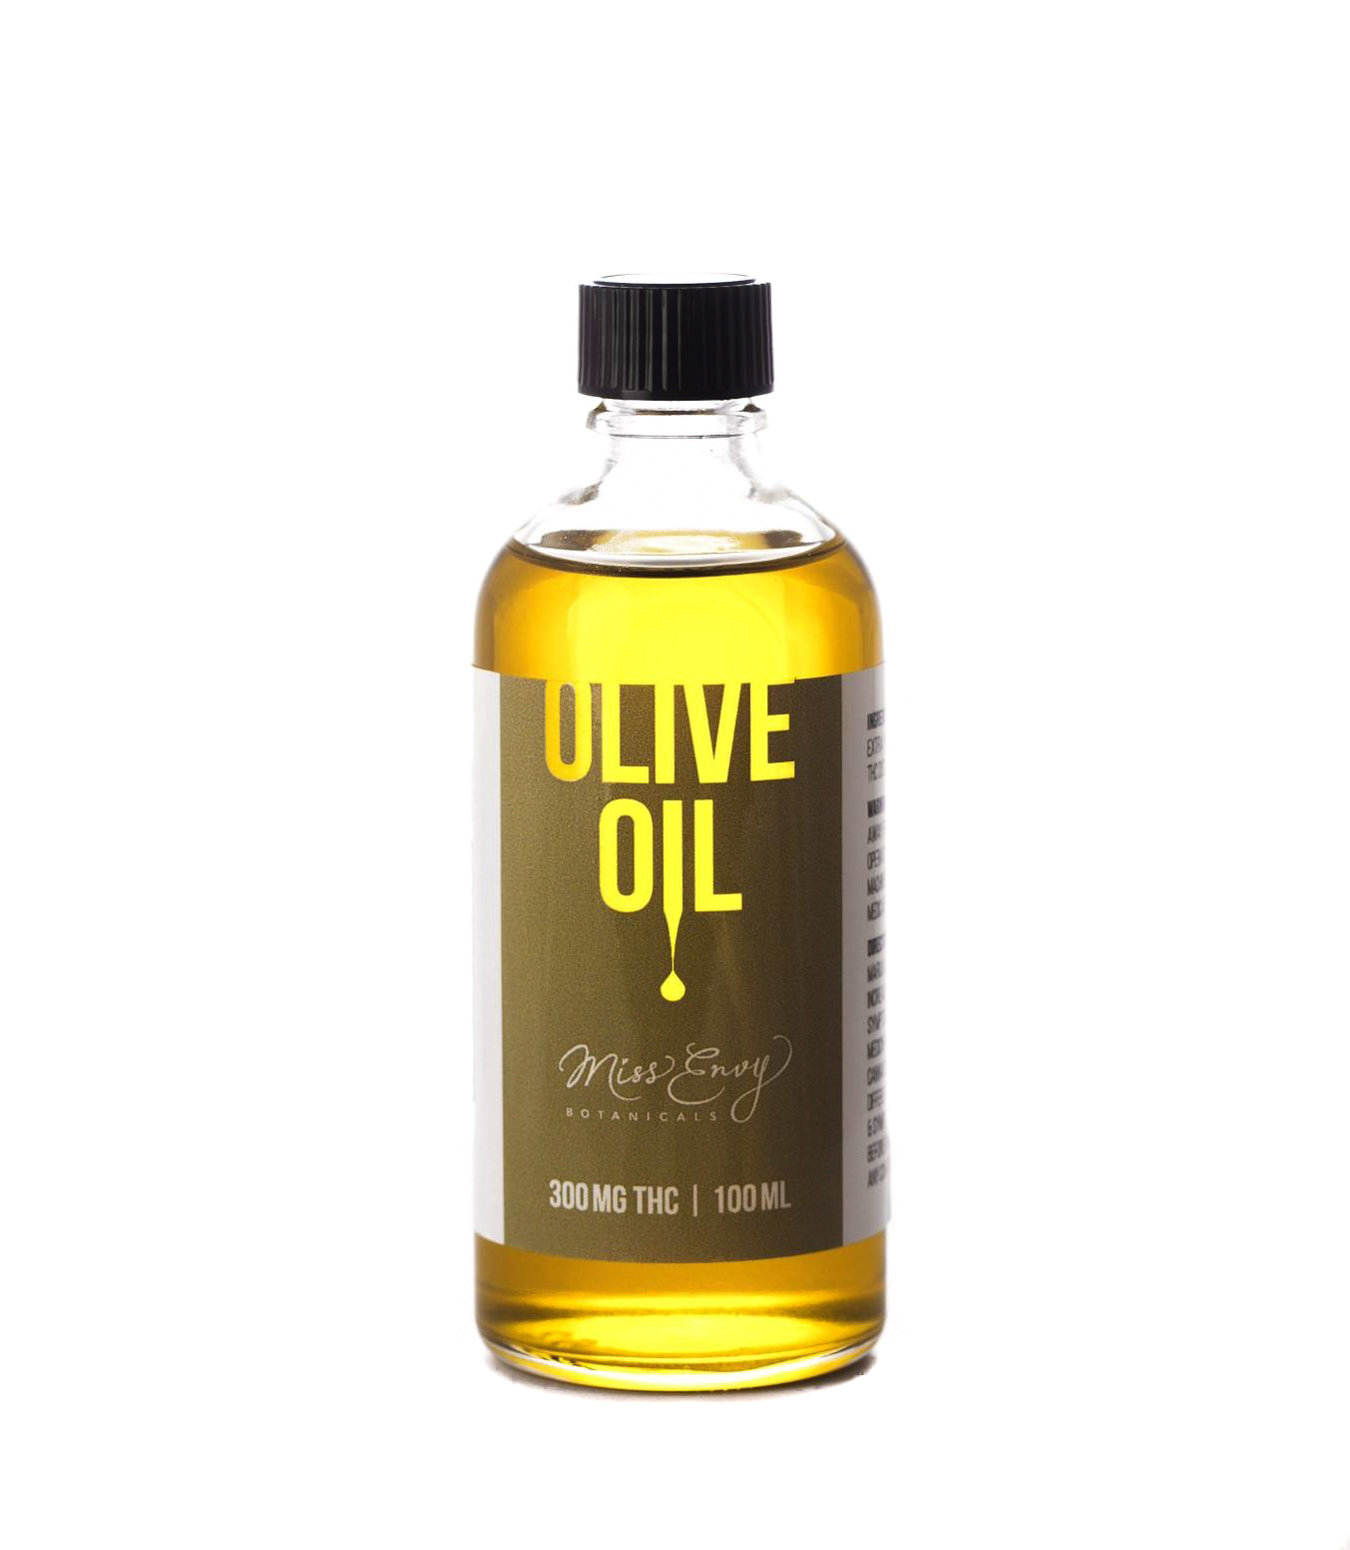 THC Olive Oil by Miss Envy Botanicals (300mg THC) 01173